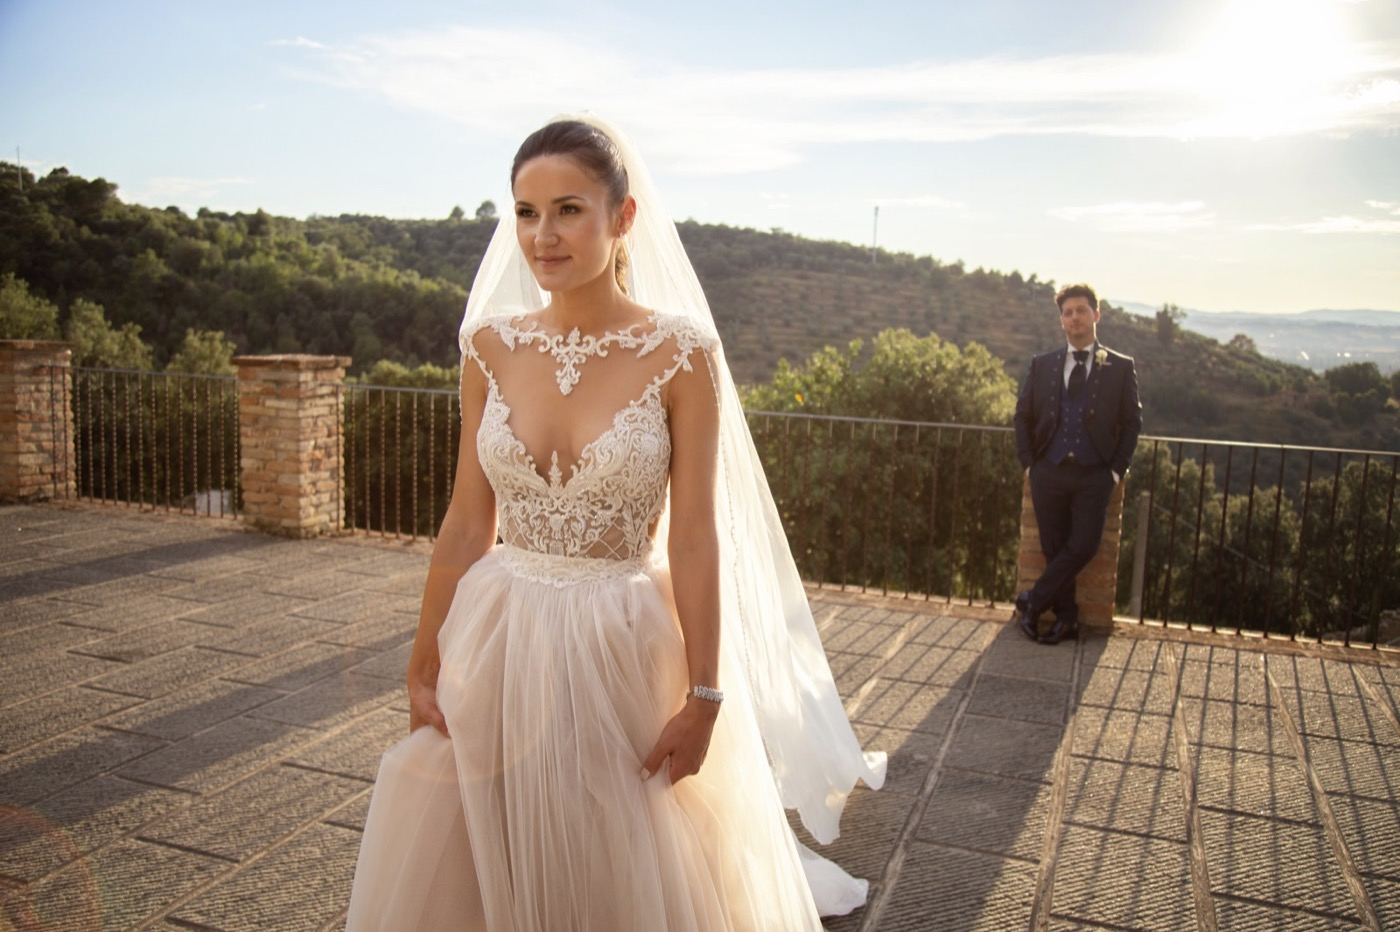 Claudio-Coppola-wedding-photographer-castello-rosciano-torgiano-51